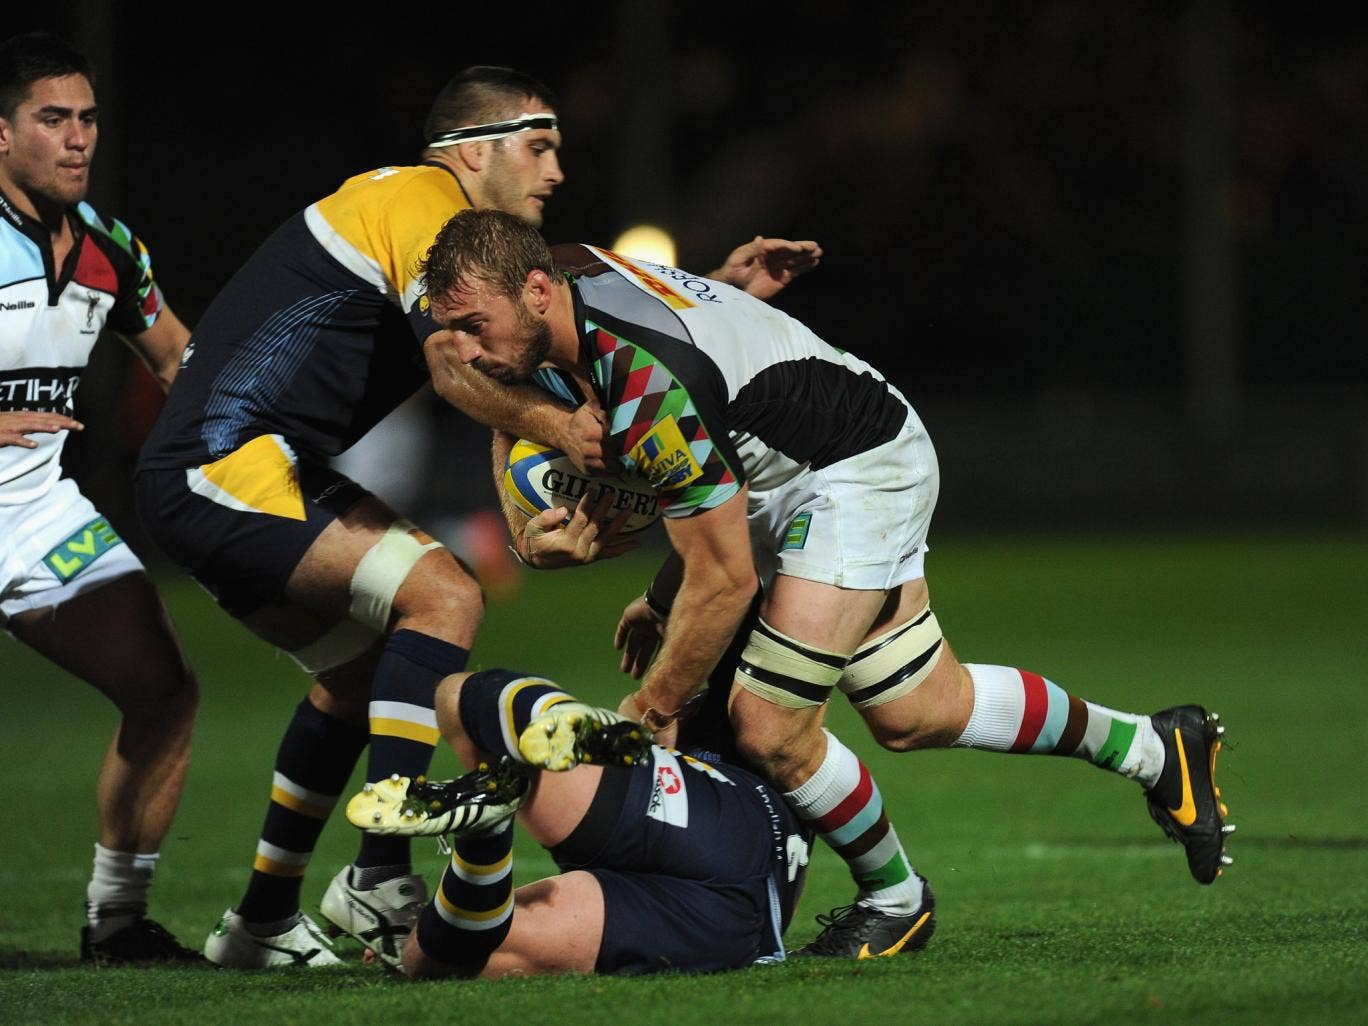 Chris Robshaw impressed for Harlequins in their victory over Worcester Warriors